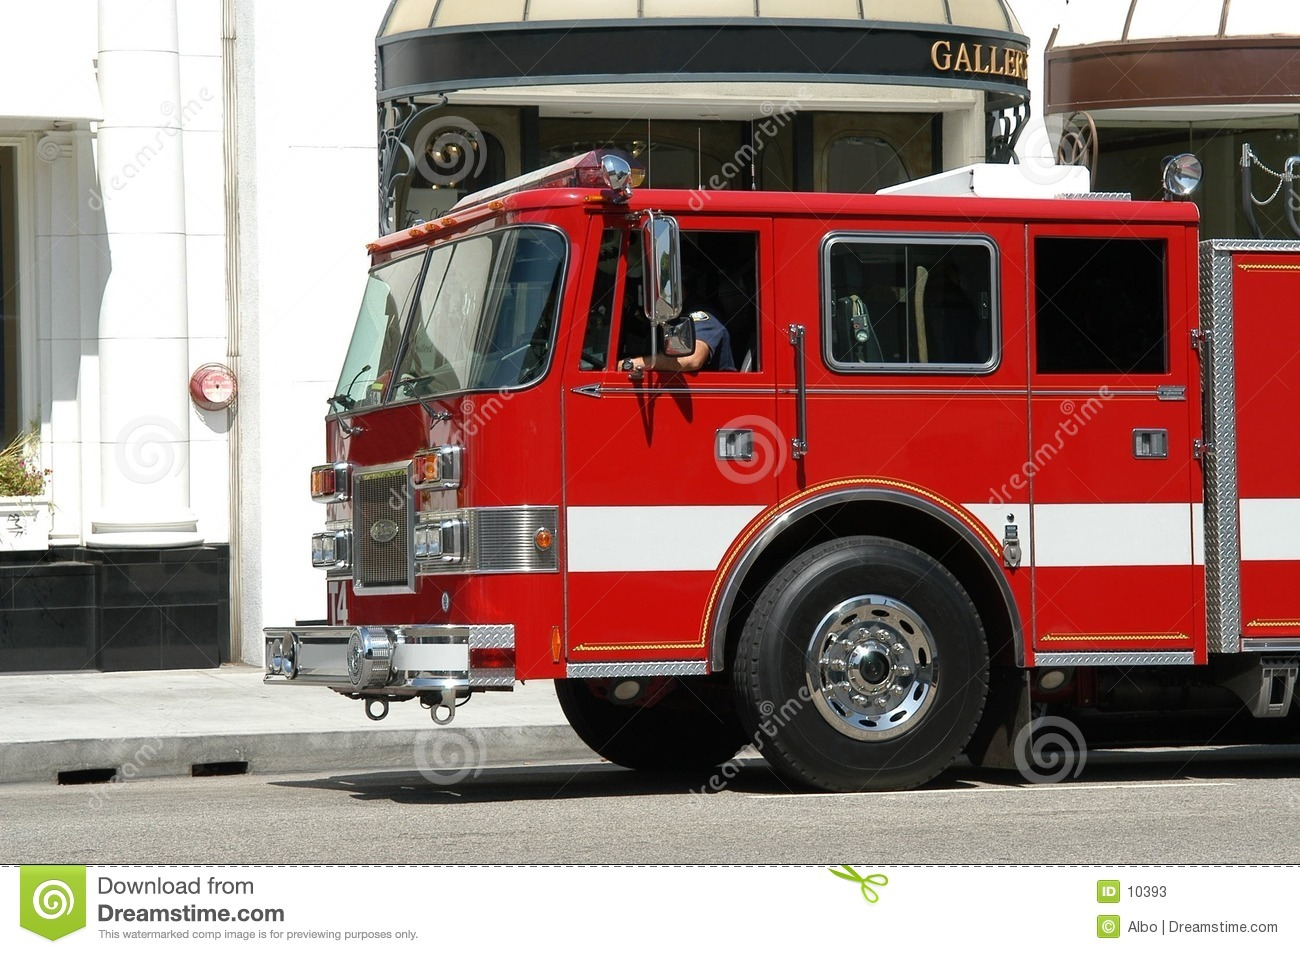 Fire department truck